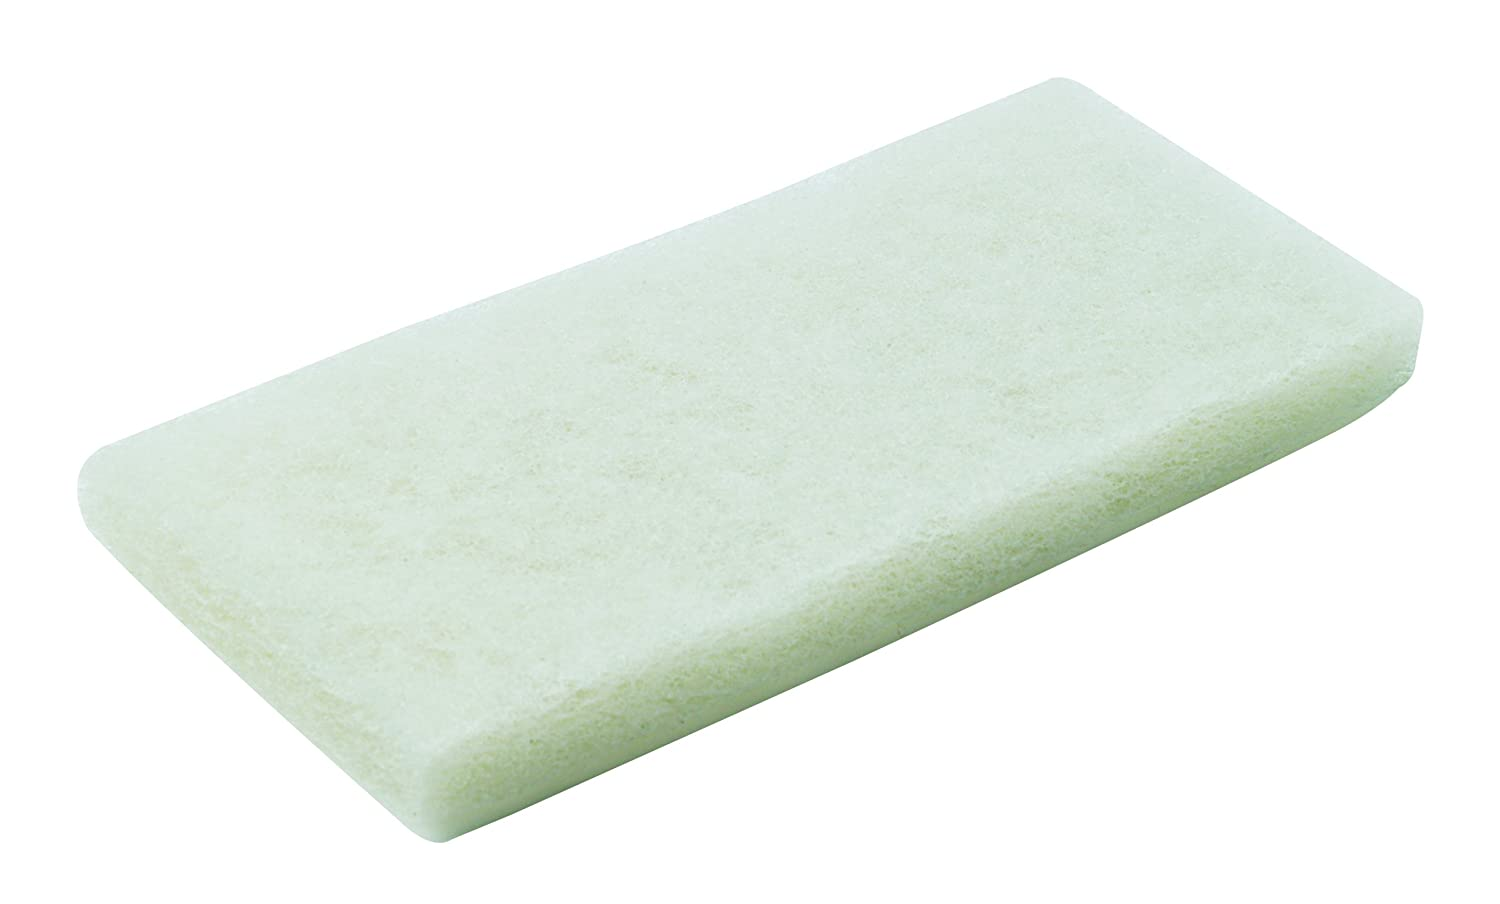 3M Doodlebug Cleaning Pad 8440 White 4.625 x 10 4 Boxes of 5